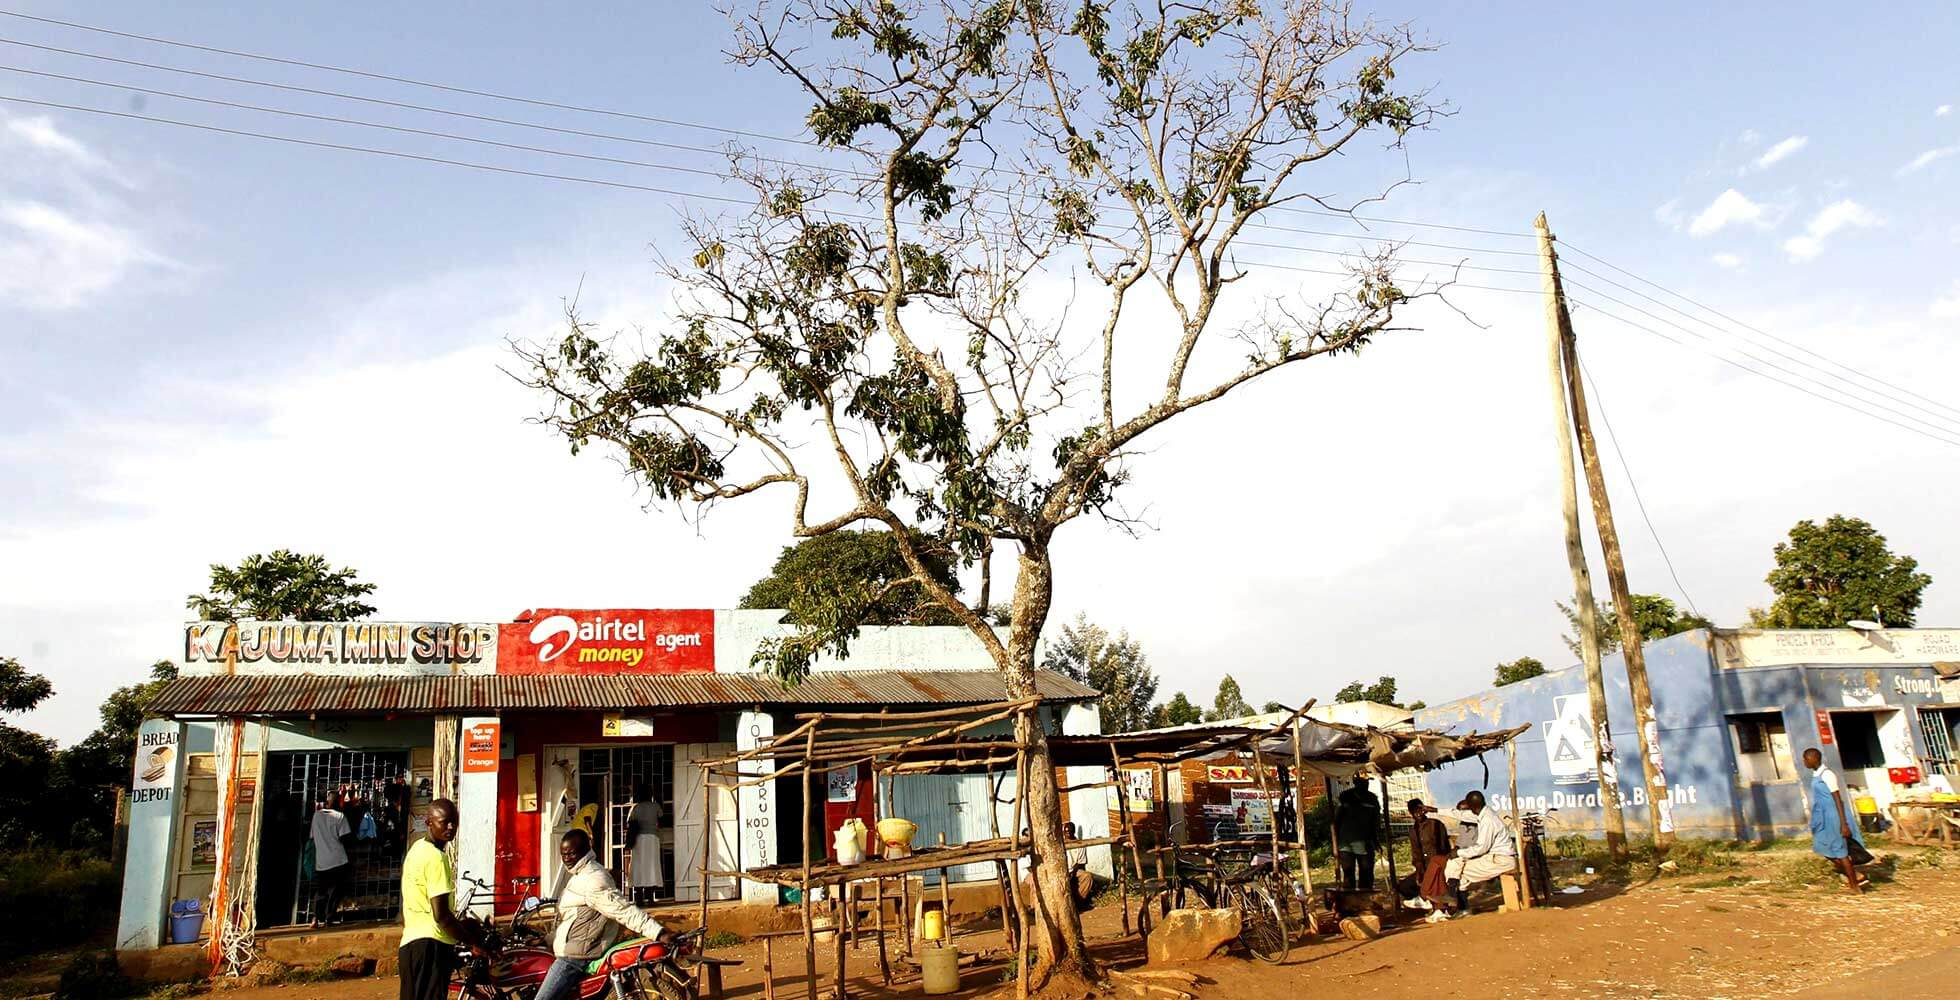 You are currently viewing An e-commerce platform serving unbanked customers in rural Kenya has raised $26 million